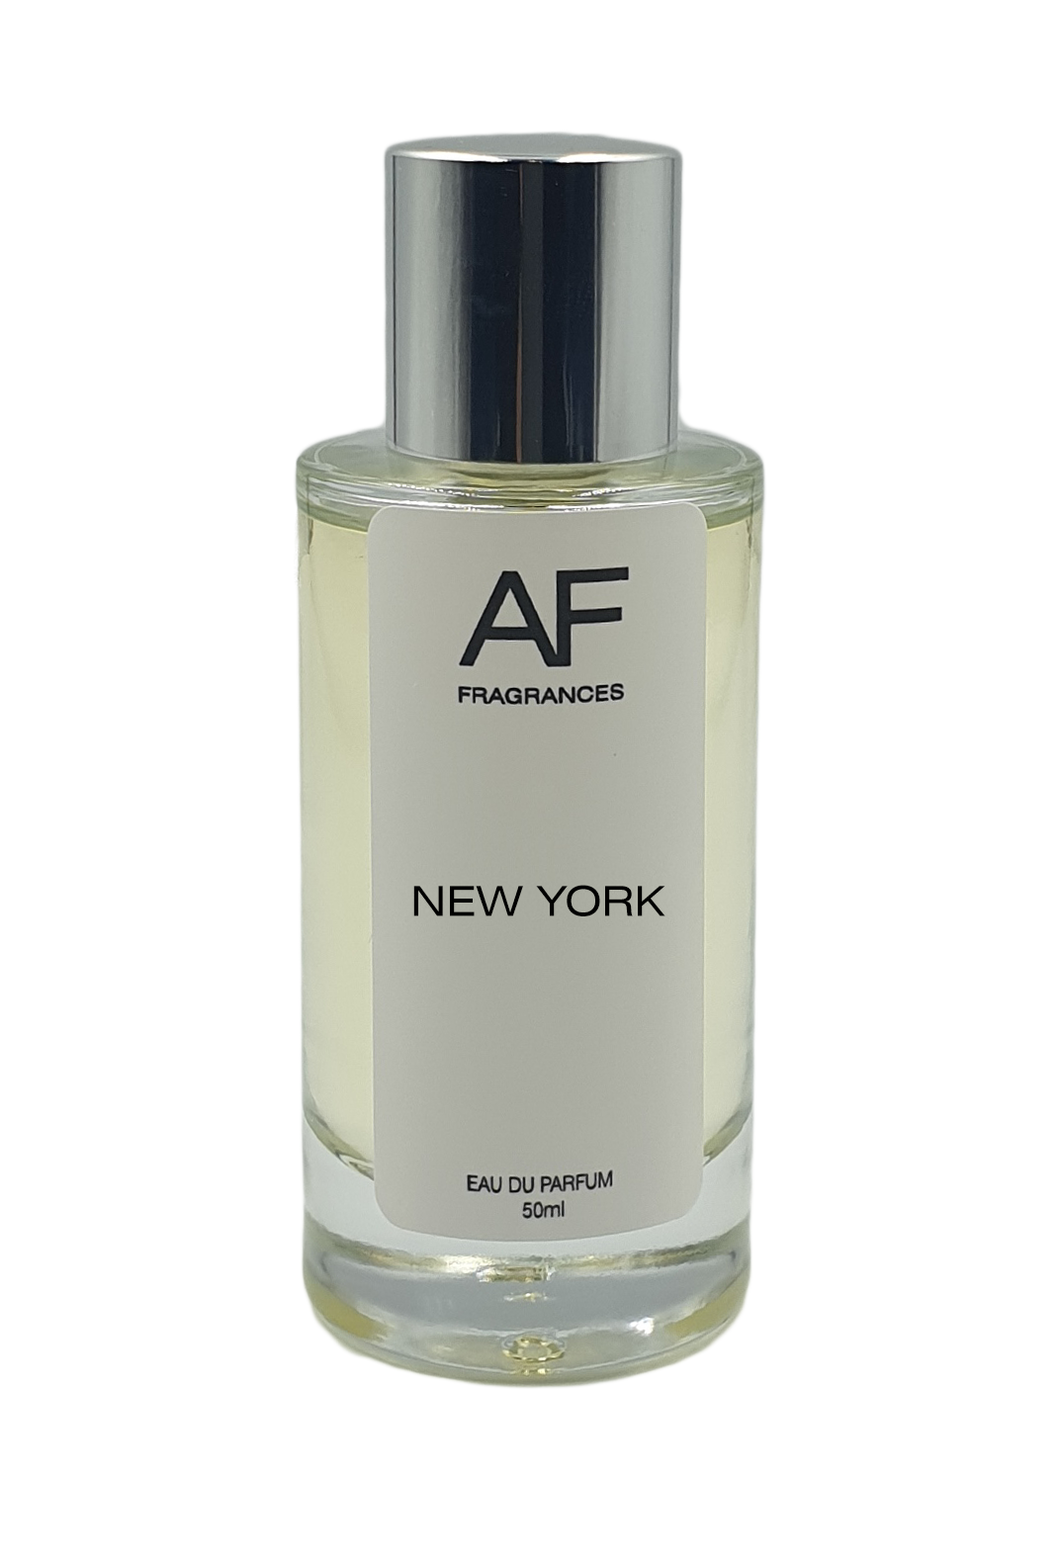 New York - AF Fragrances